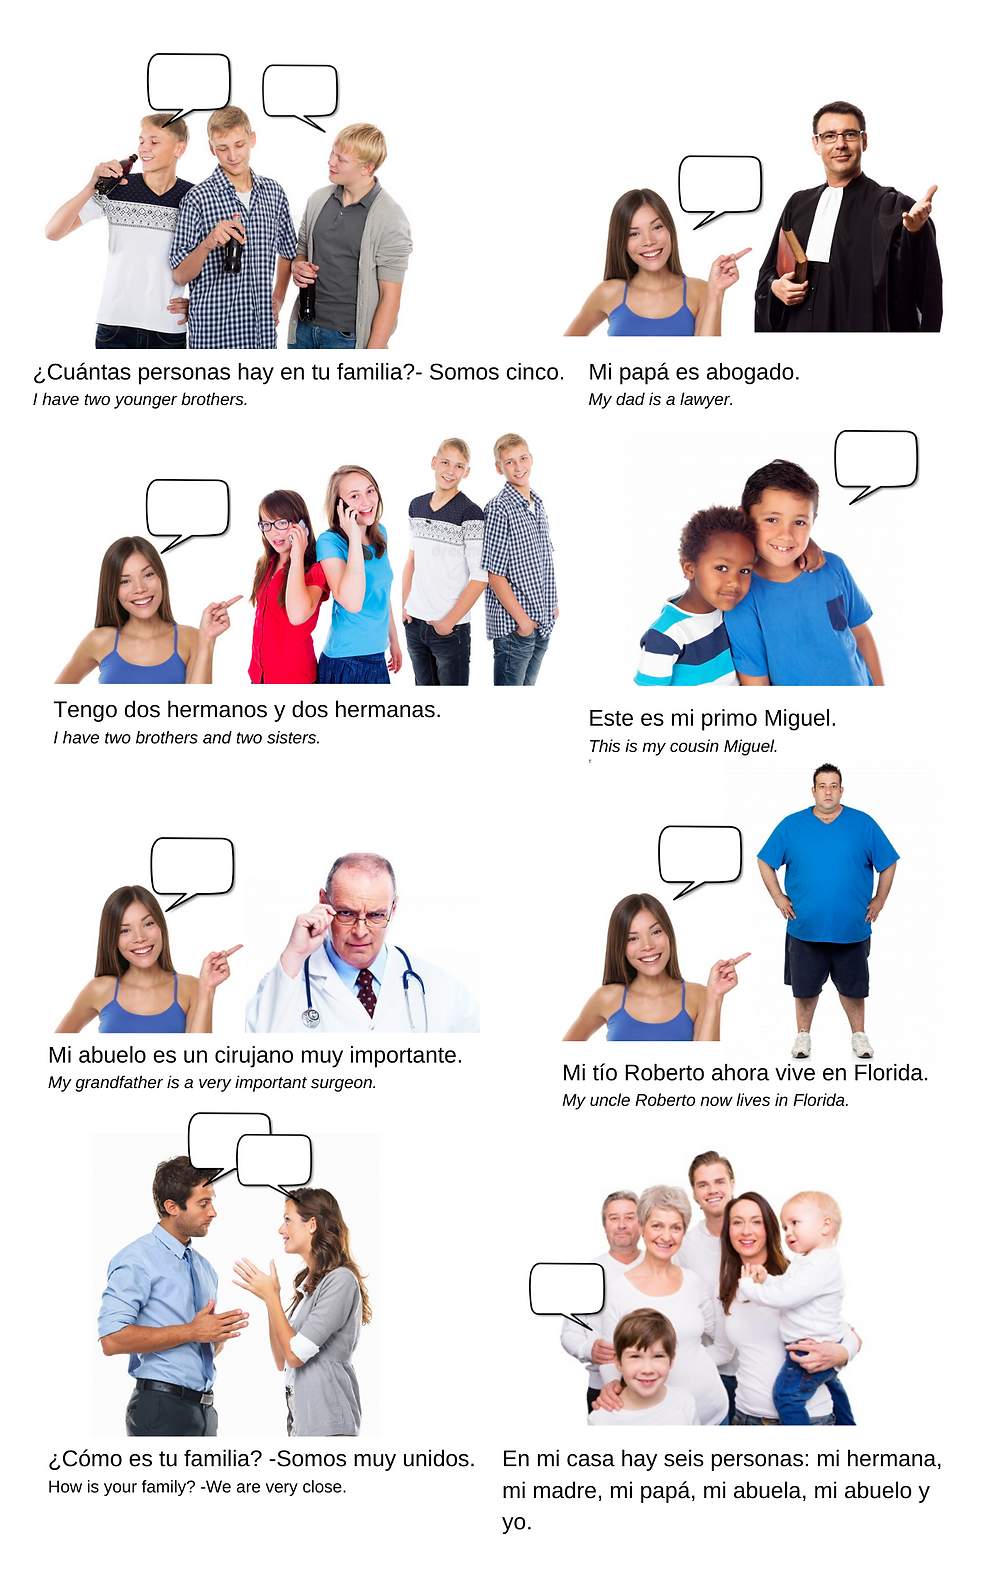 Talking About Your Family in Spanish